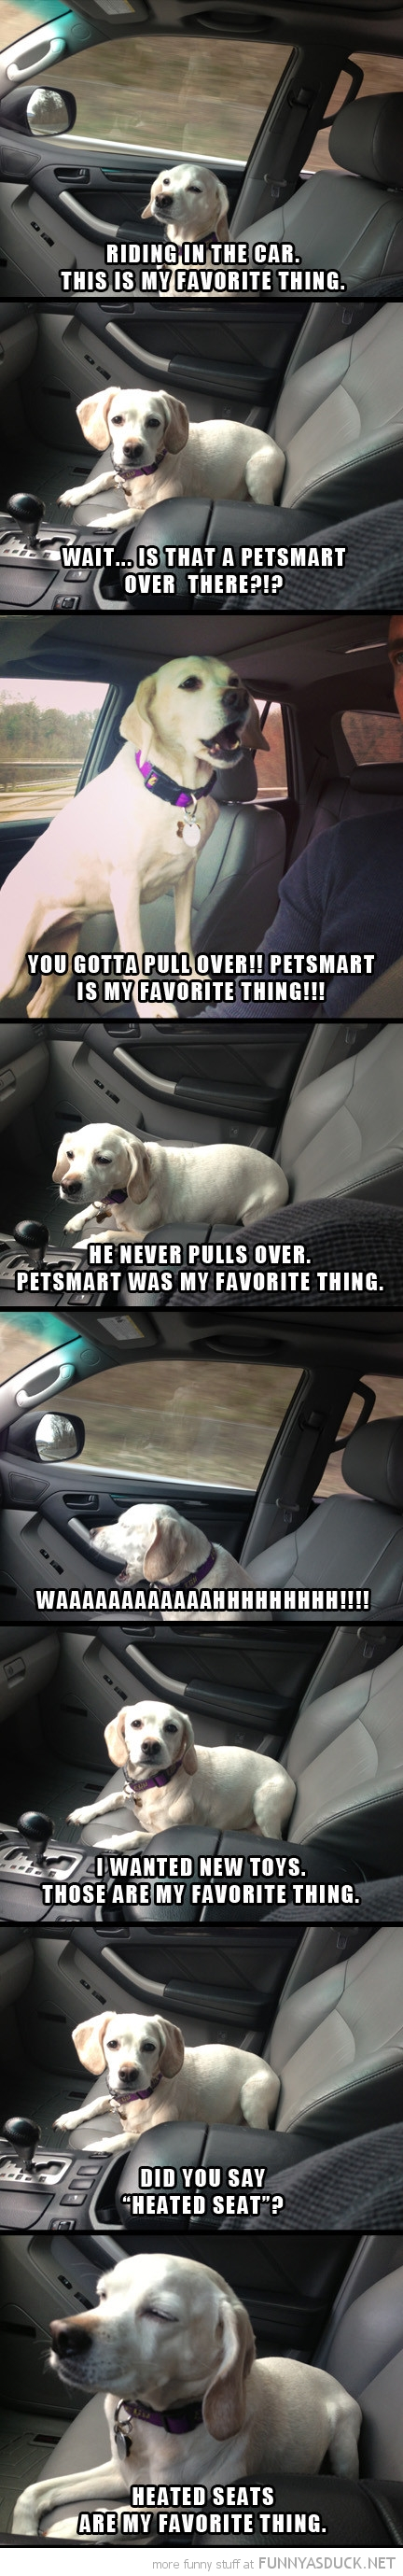 dog animal car petsmart heated seats favourite thing  funny pics pictures pic picture image photo images photos lol